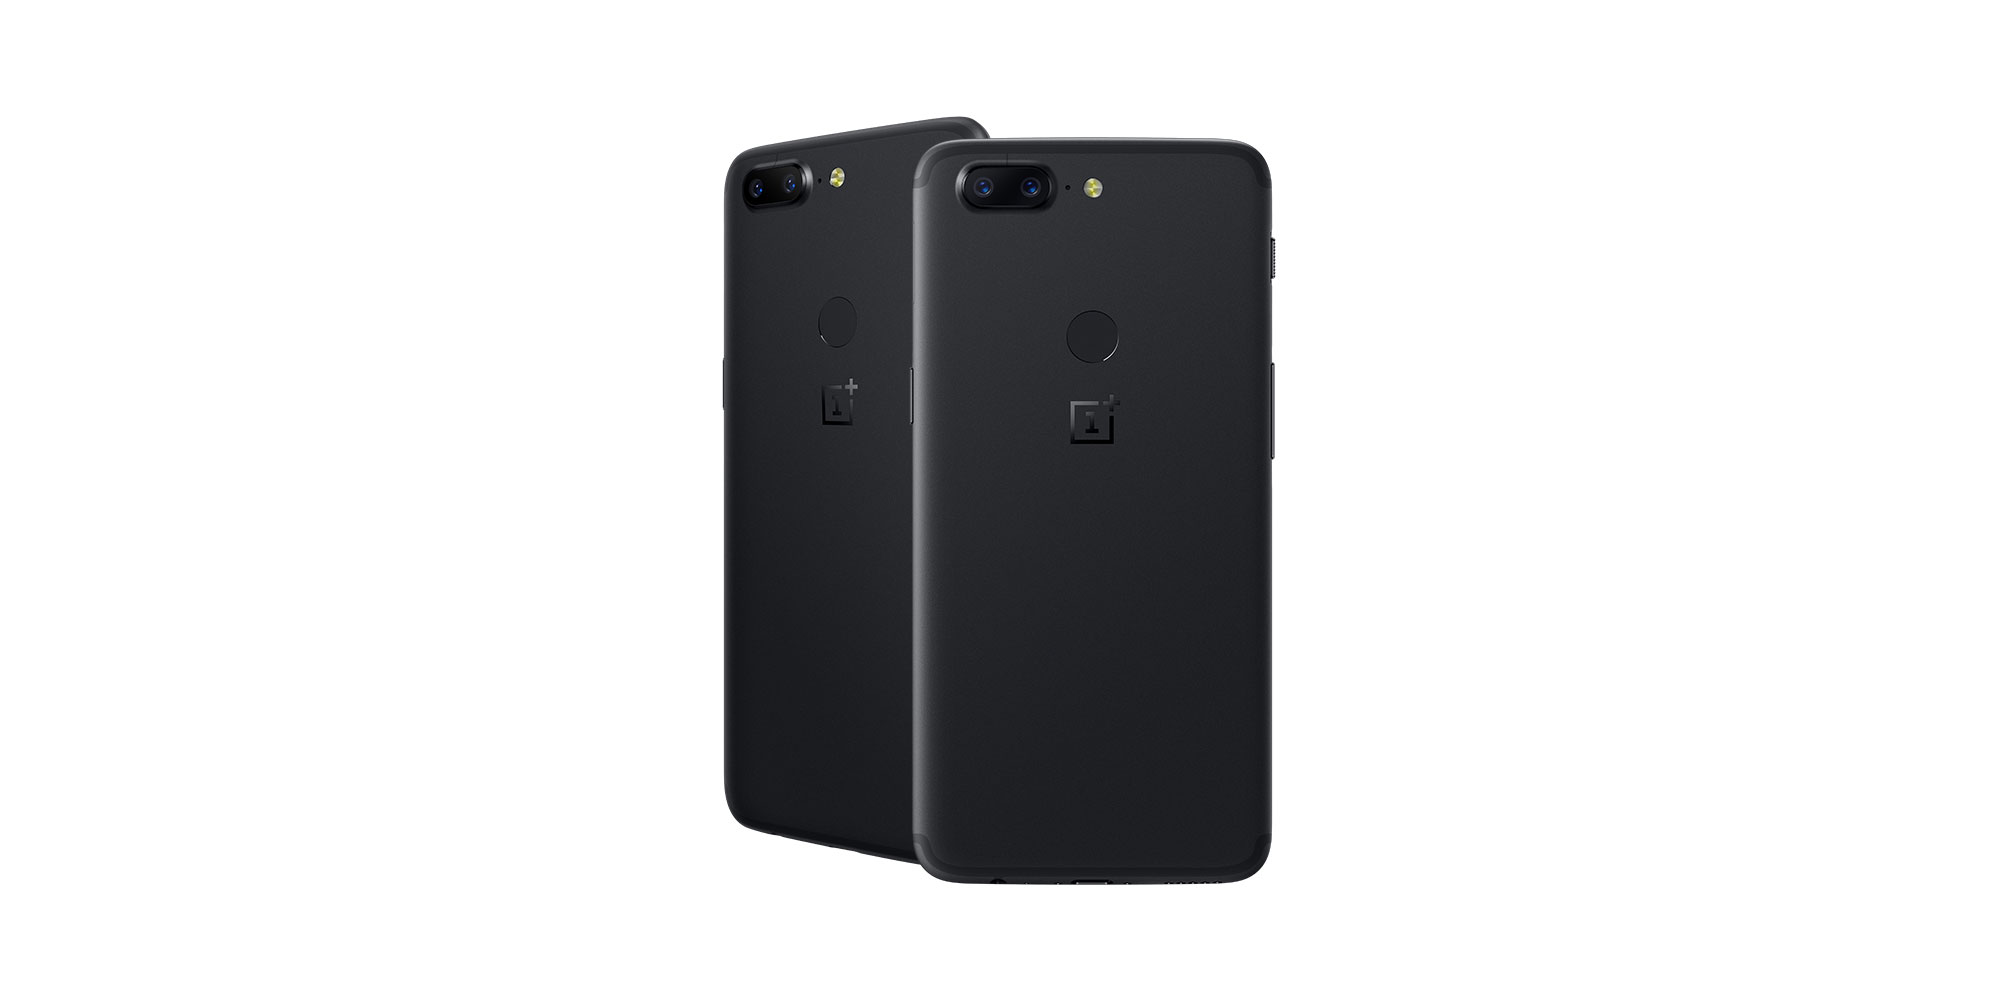 Htc Oneplus 5t Specs Htc U11 Vs Oneplus 5t Most Popular Smartphone Brands And Models In China